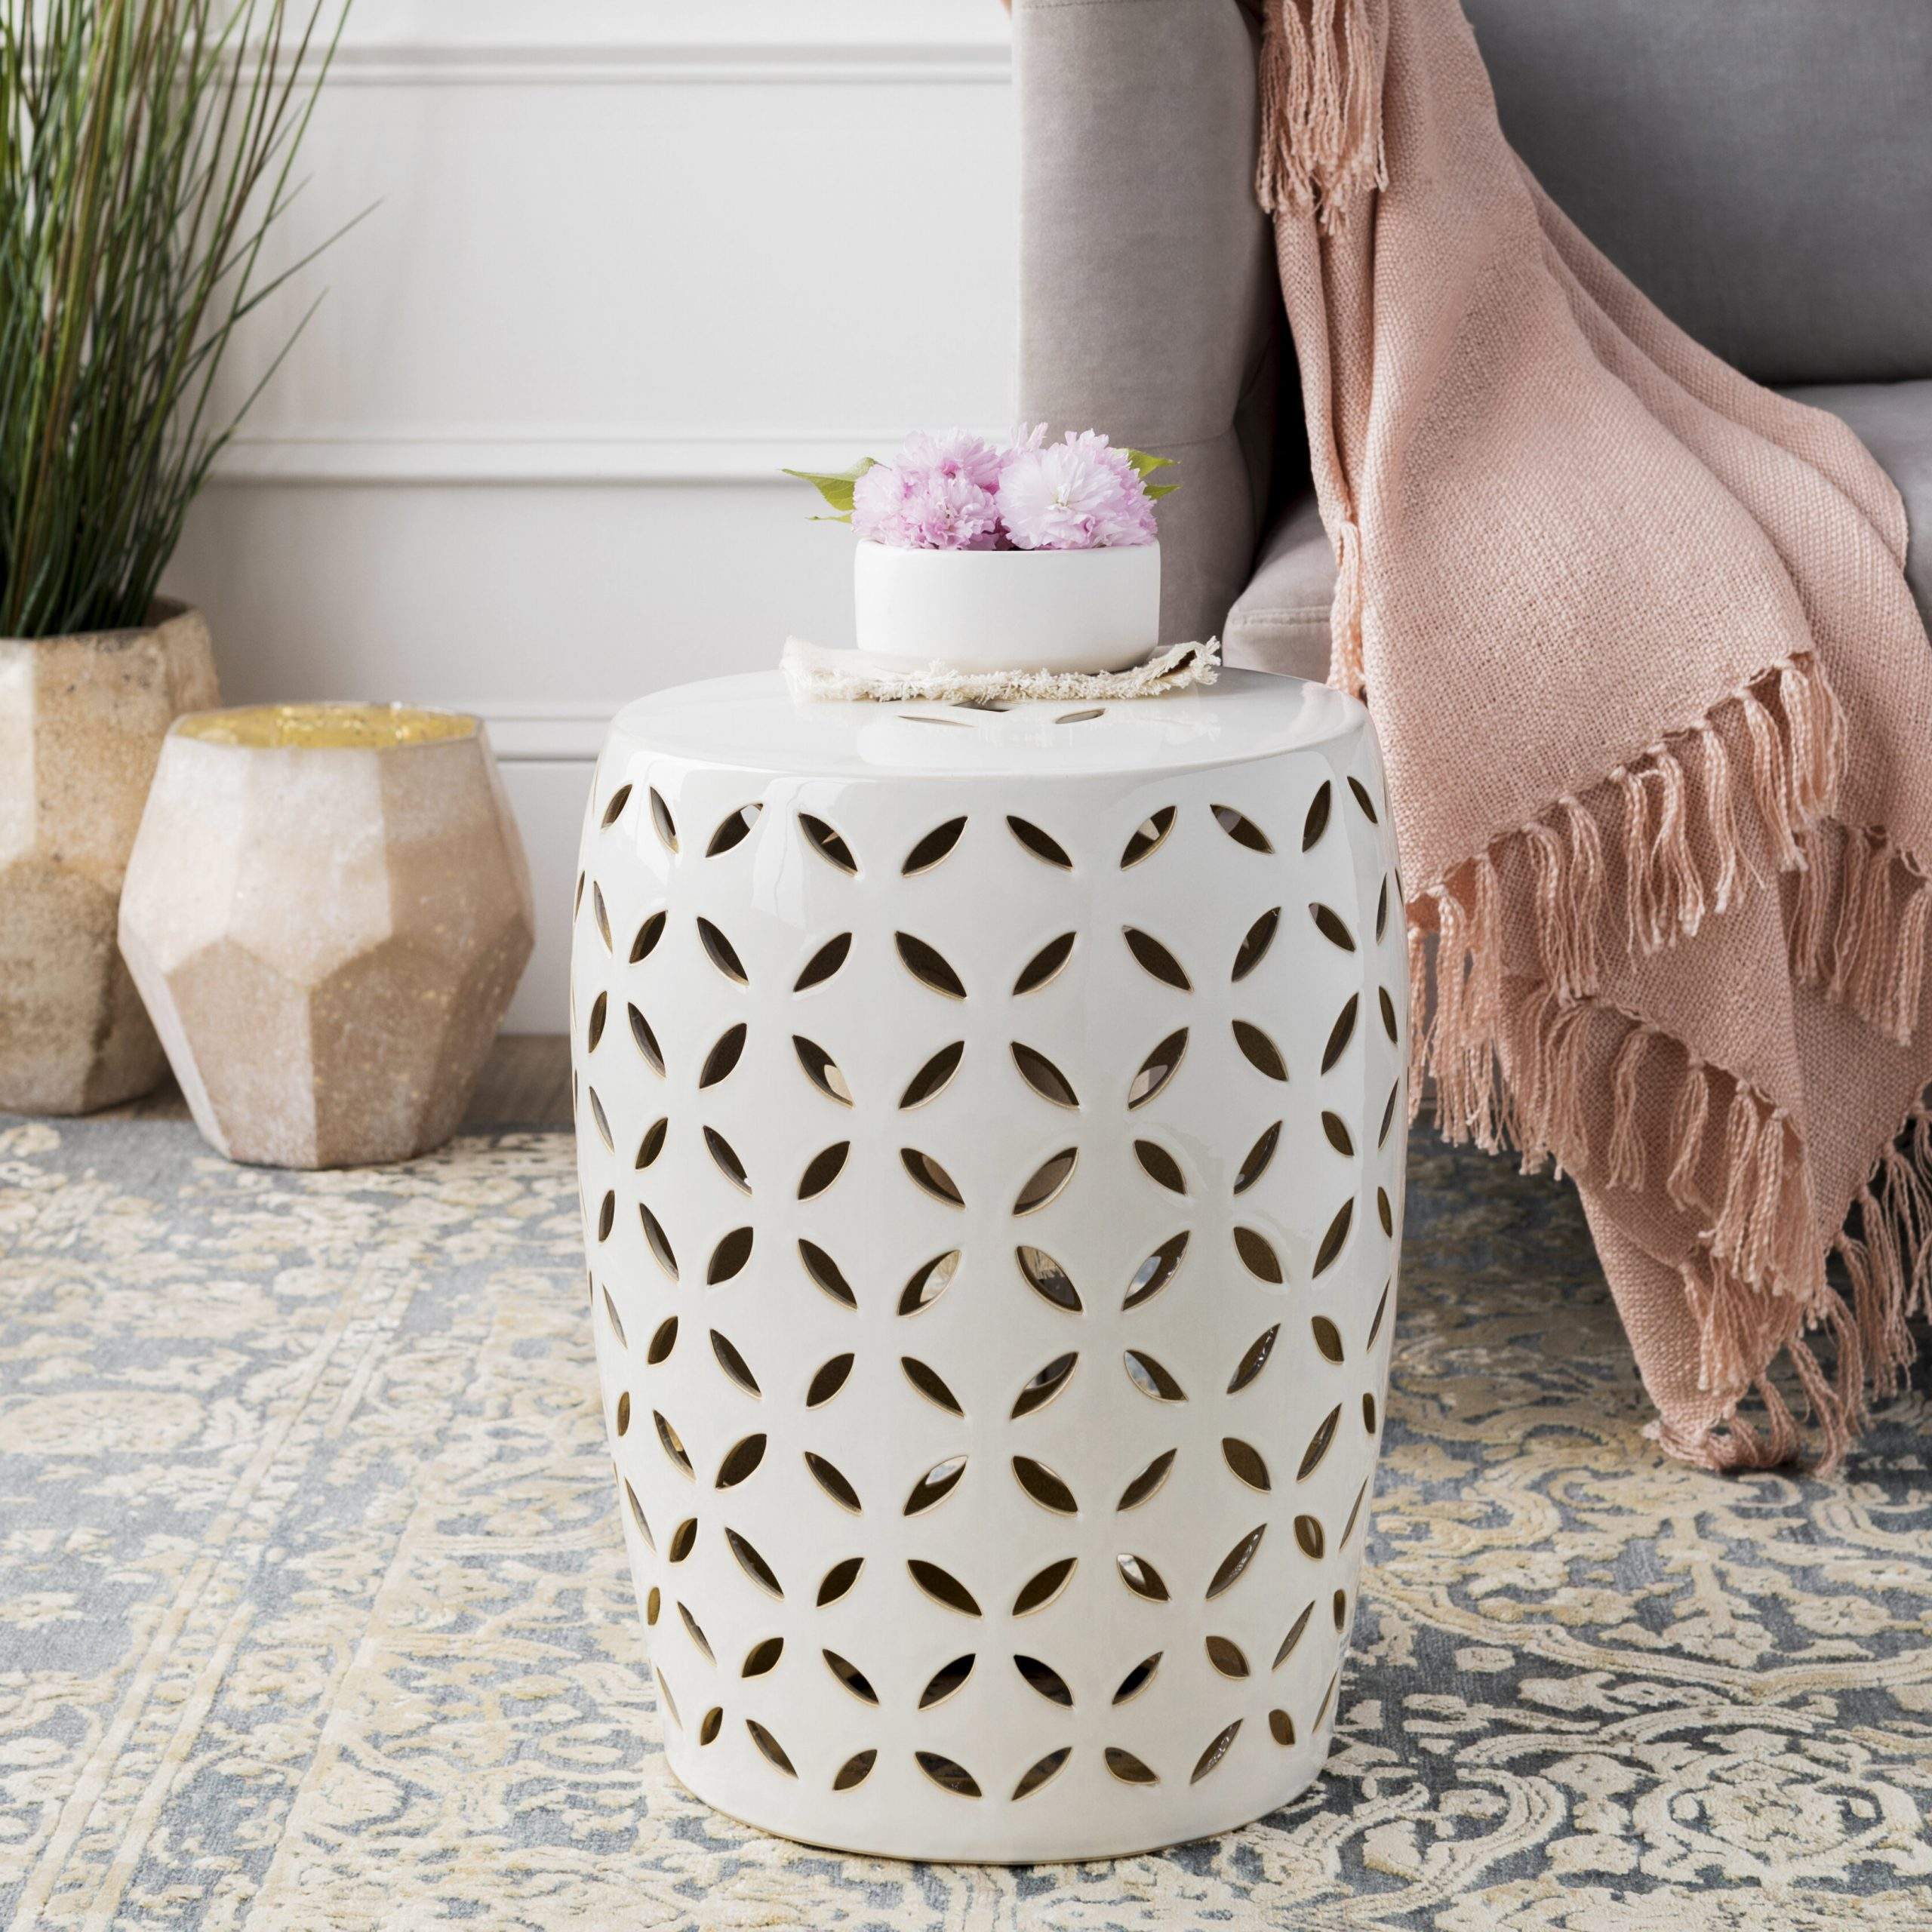 Svendsen Ceramic Garden Stools Throughout Current Hermione Accent Stool (View 11 of 30)